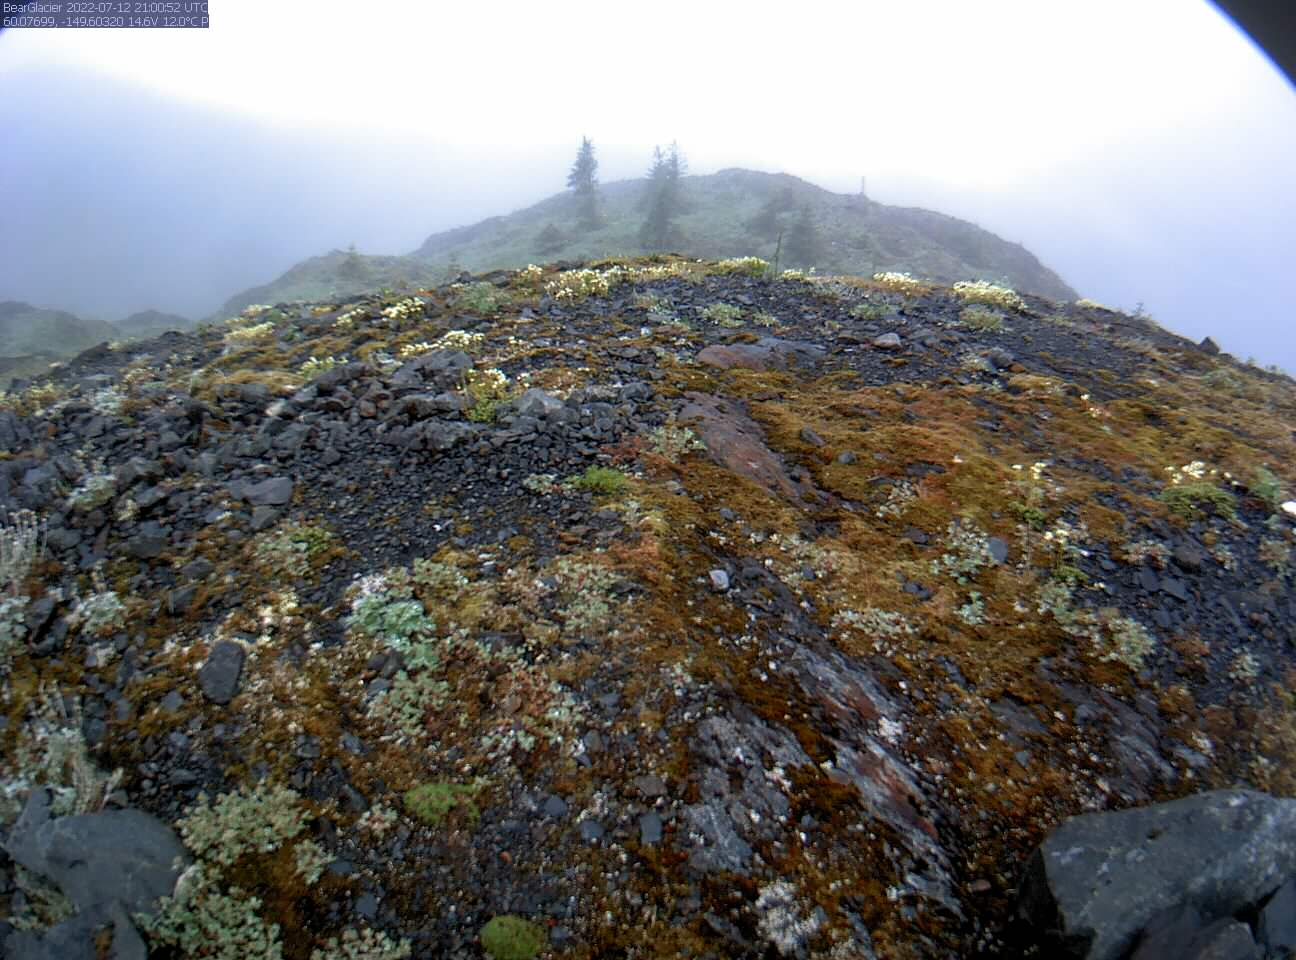 Bear Glacier Ice-Dammed Lake Webcam preview image